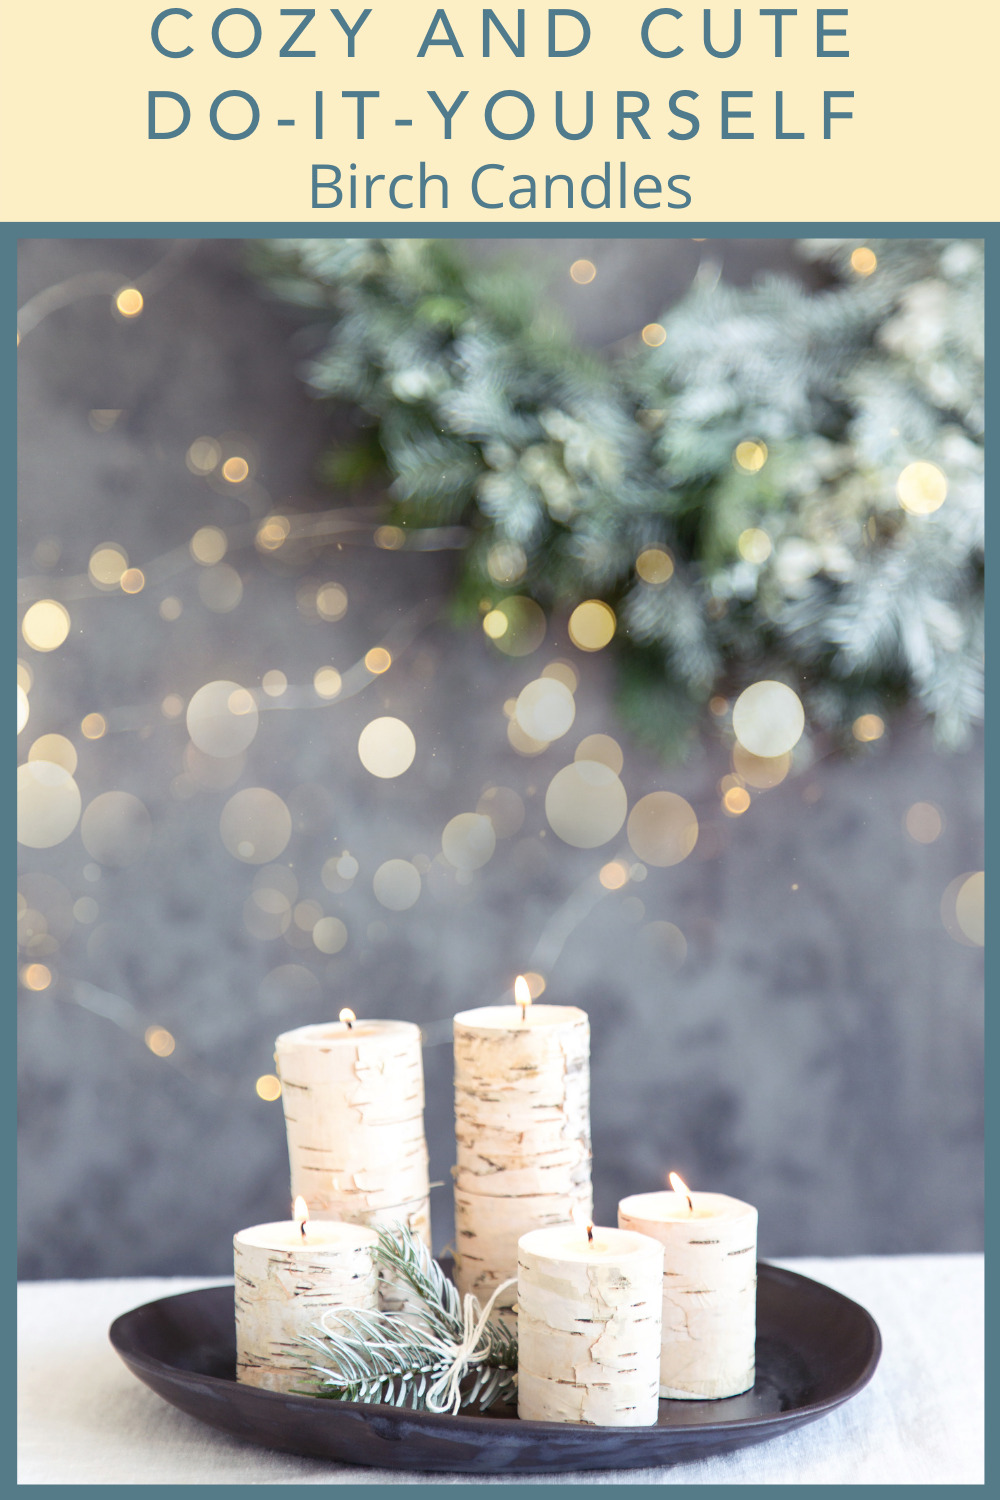 Sunlitspaces.com has the best tips for anyone interested in spicing up a drab space. Find out all you need to know before your next project. Customize a cozy space with these easy DIY birch candles!